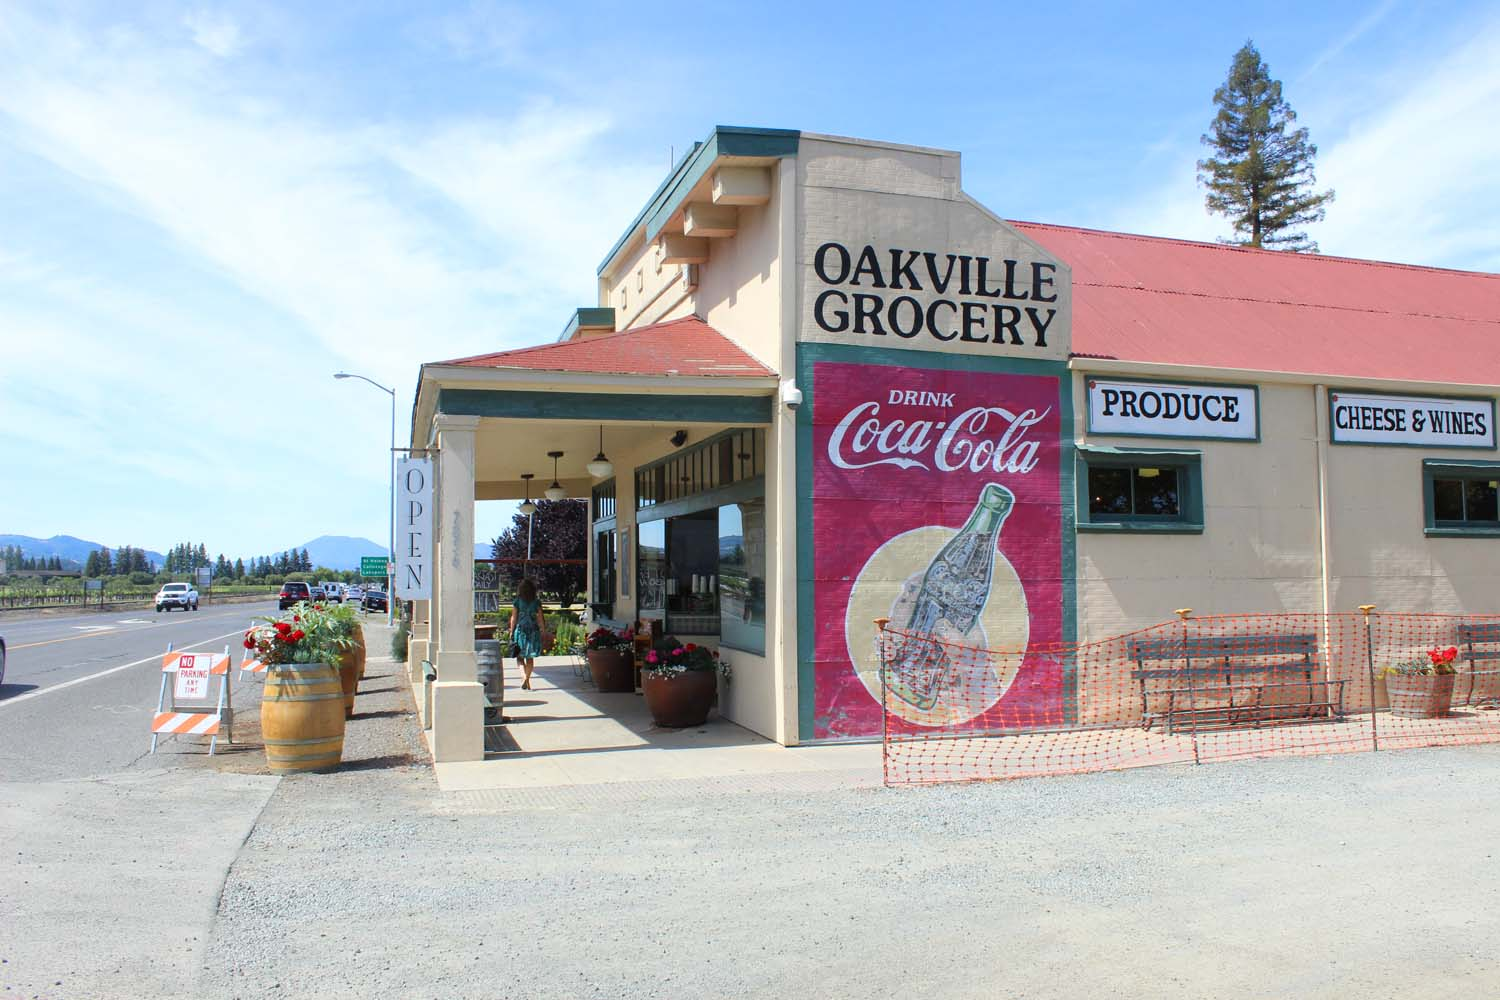 Oakville Grocery   | Image:   Laura Messersmith